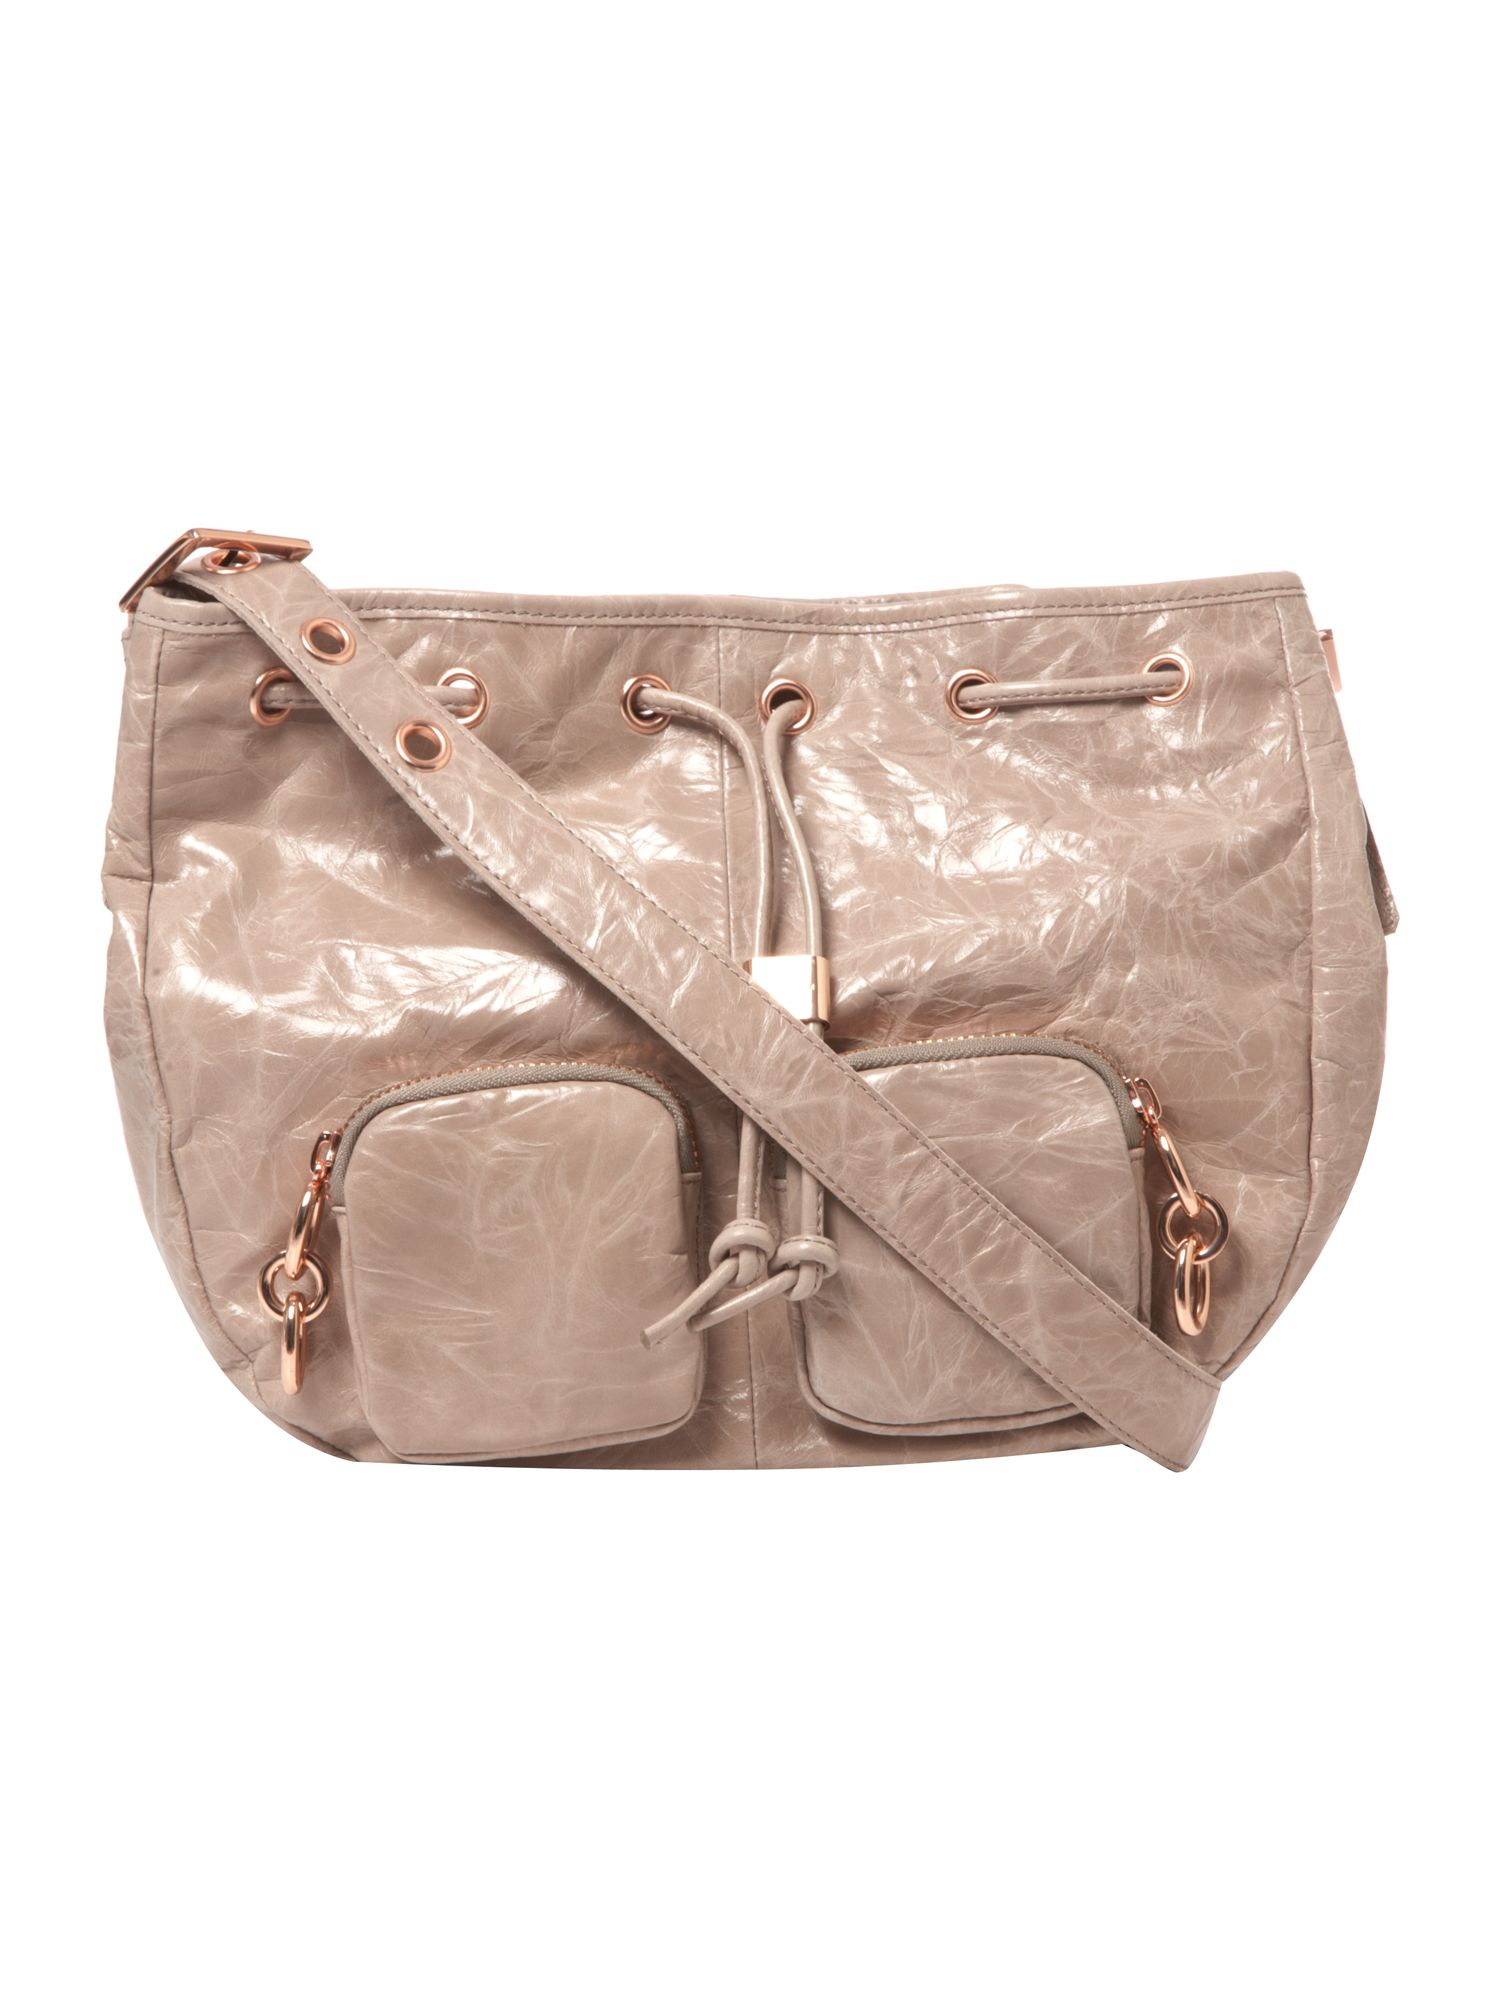 Ted Baker Indie medium leather cross body bag product image